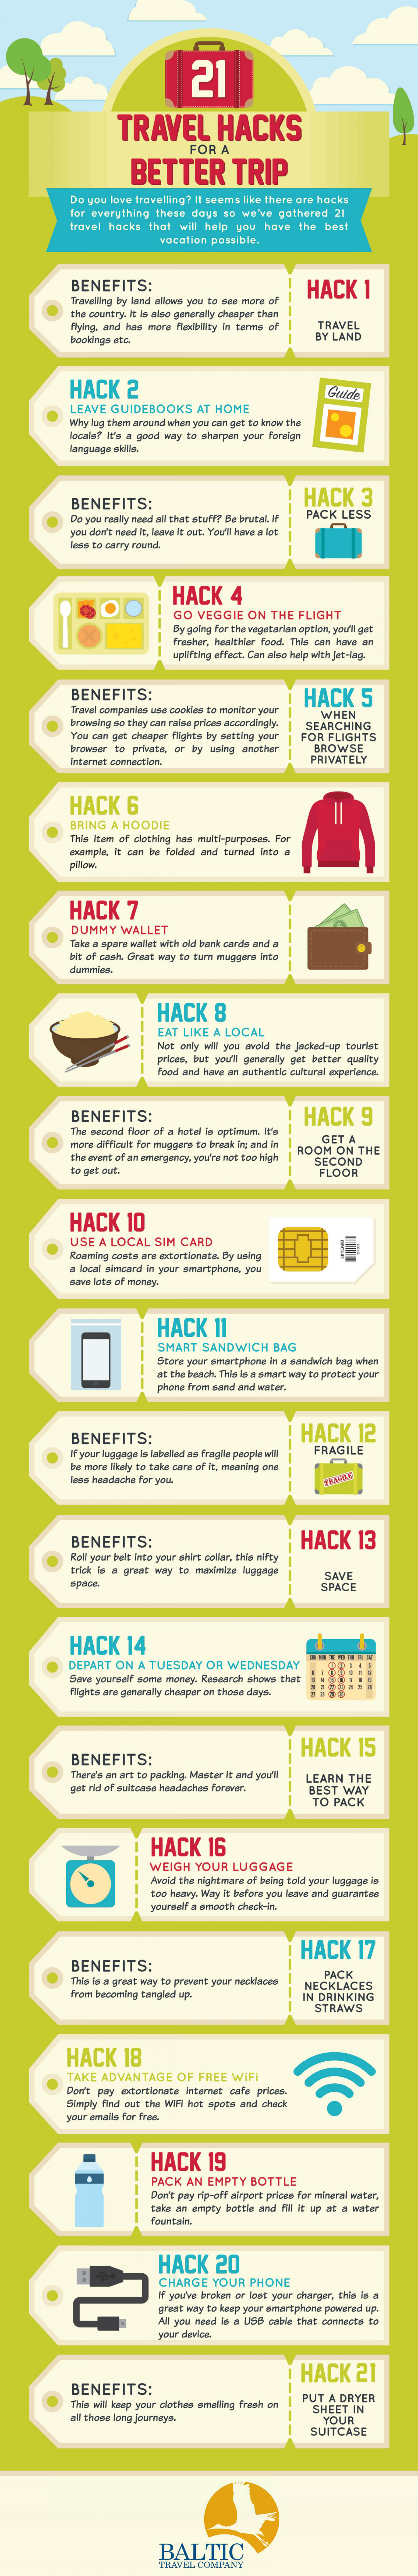 21 Travel Hacks for a Better Trip Infographic